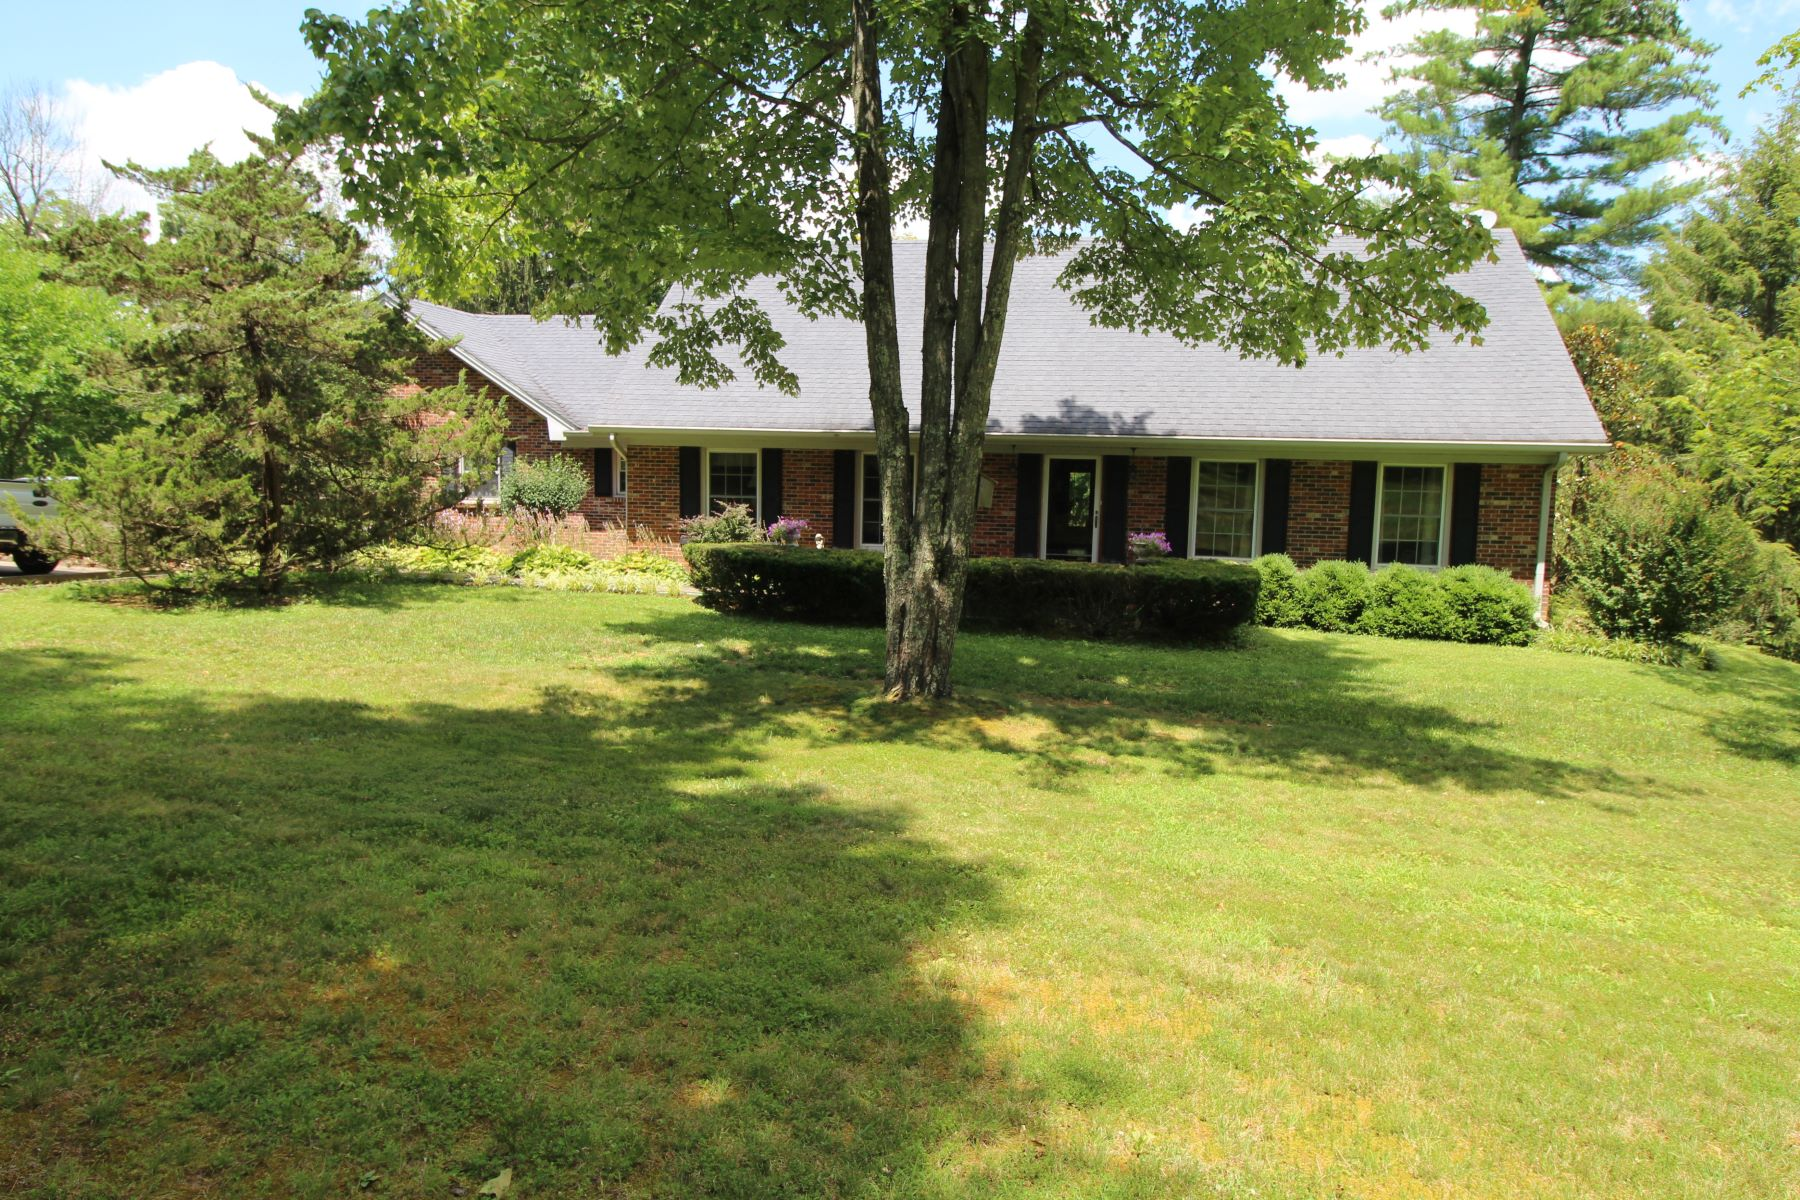 Single Family Homes for Sale at 1542 Talmage-Mayo Road Harrodsburg, Kentucky 40330 United States